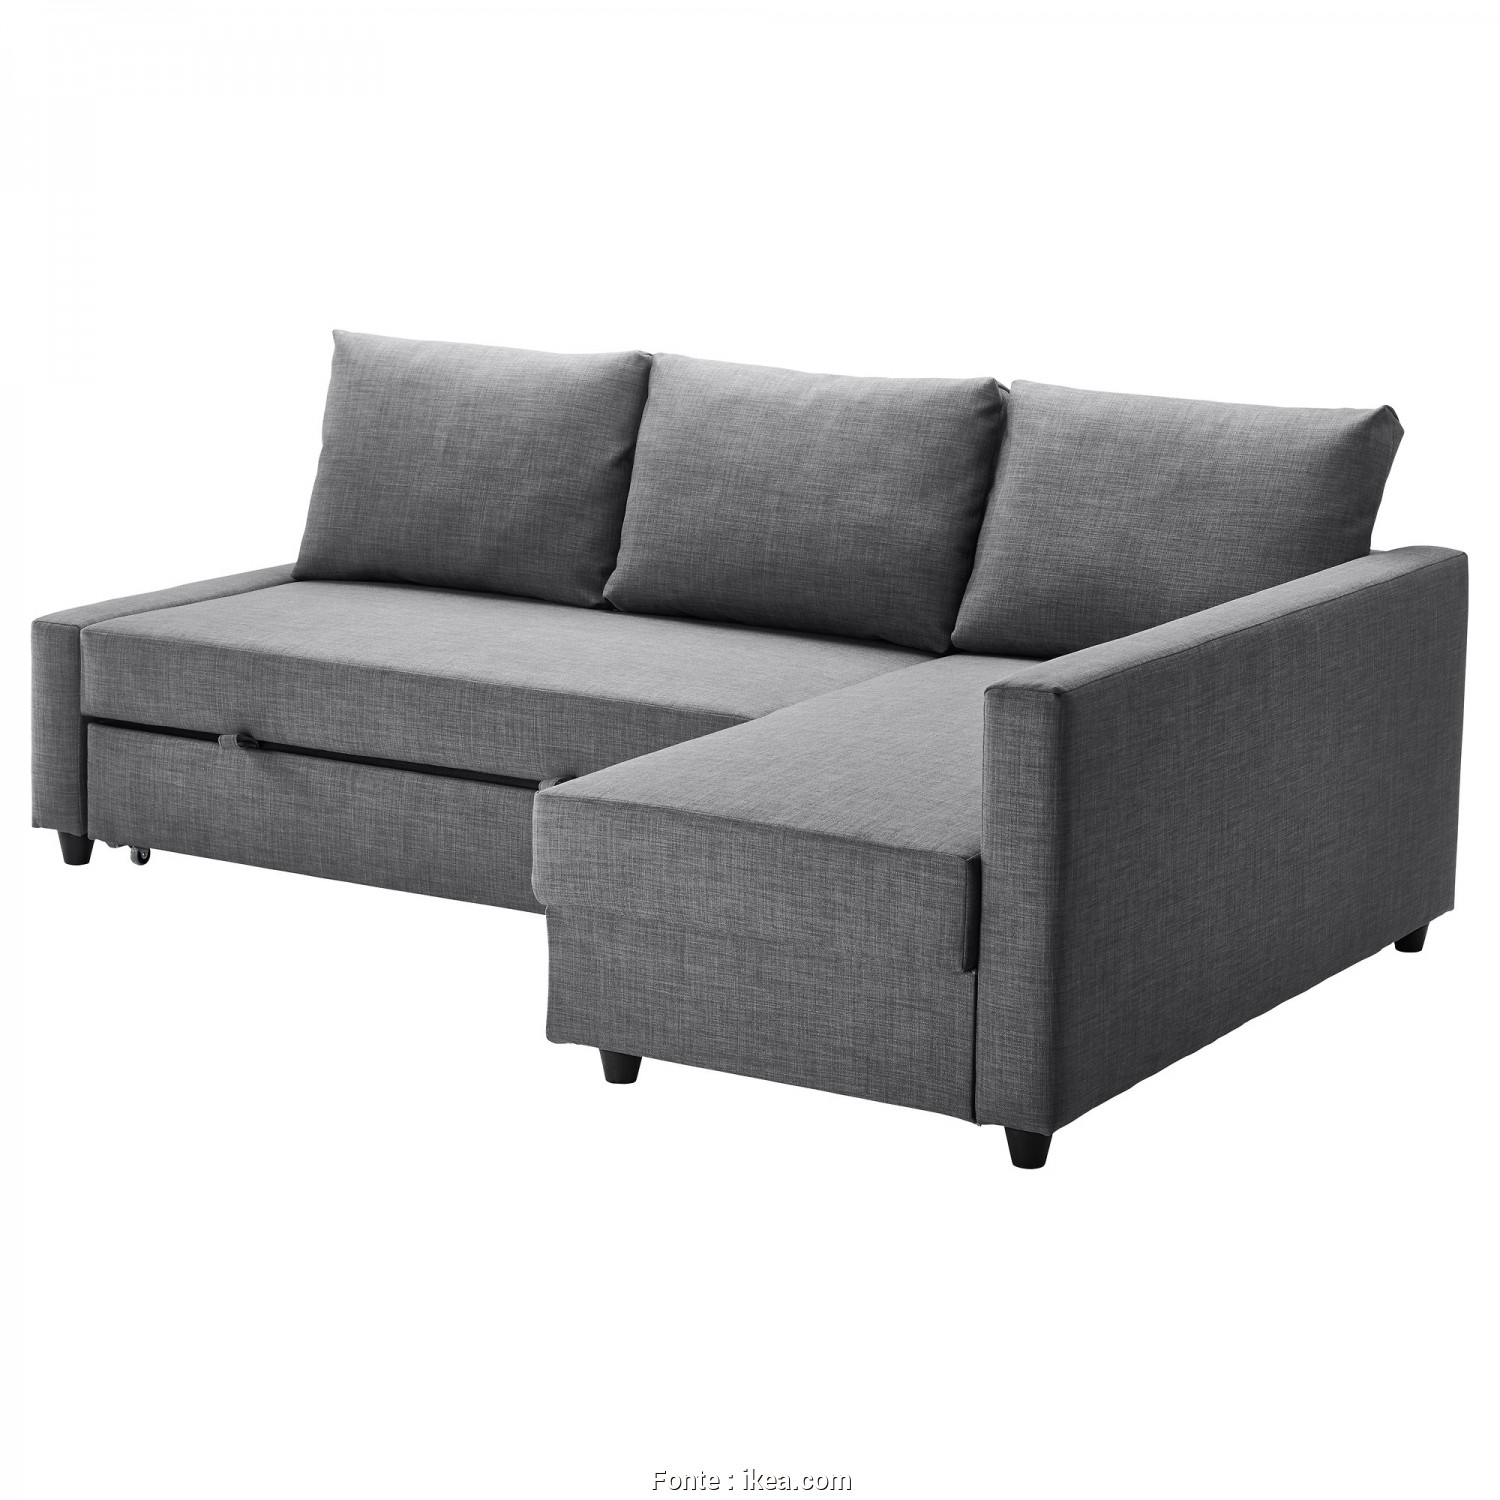 Ikea Soffa Asarum, Superiore IKEA FRIHETEN Corner Sofa-Bed With Storage Sofa, Chaise Longue, Double, In